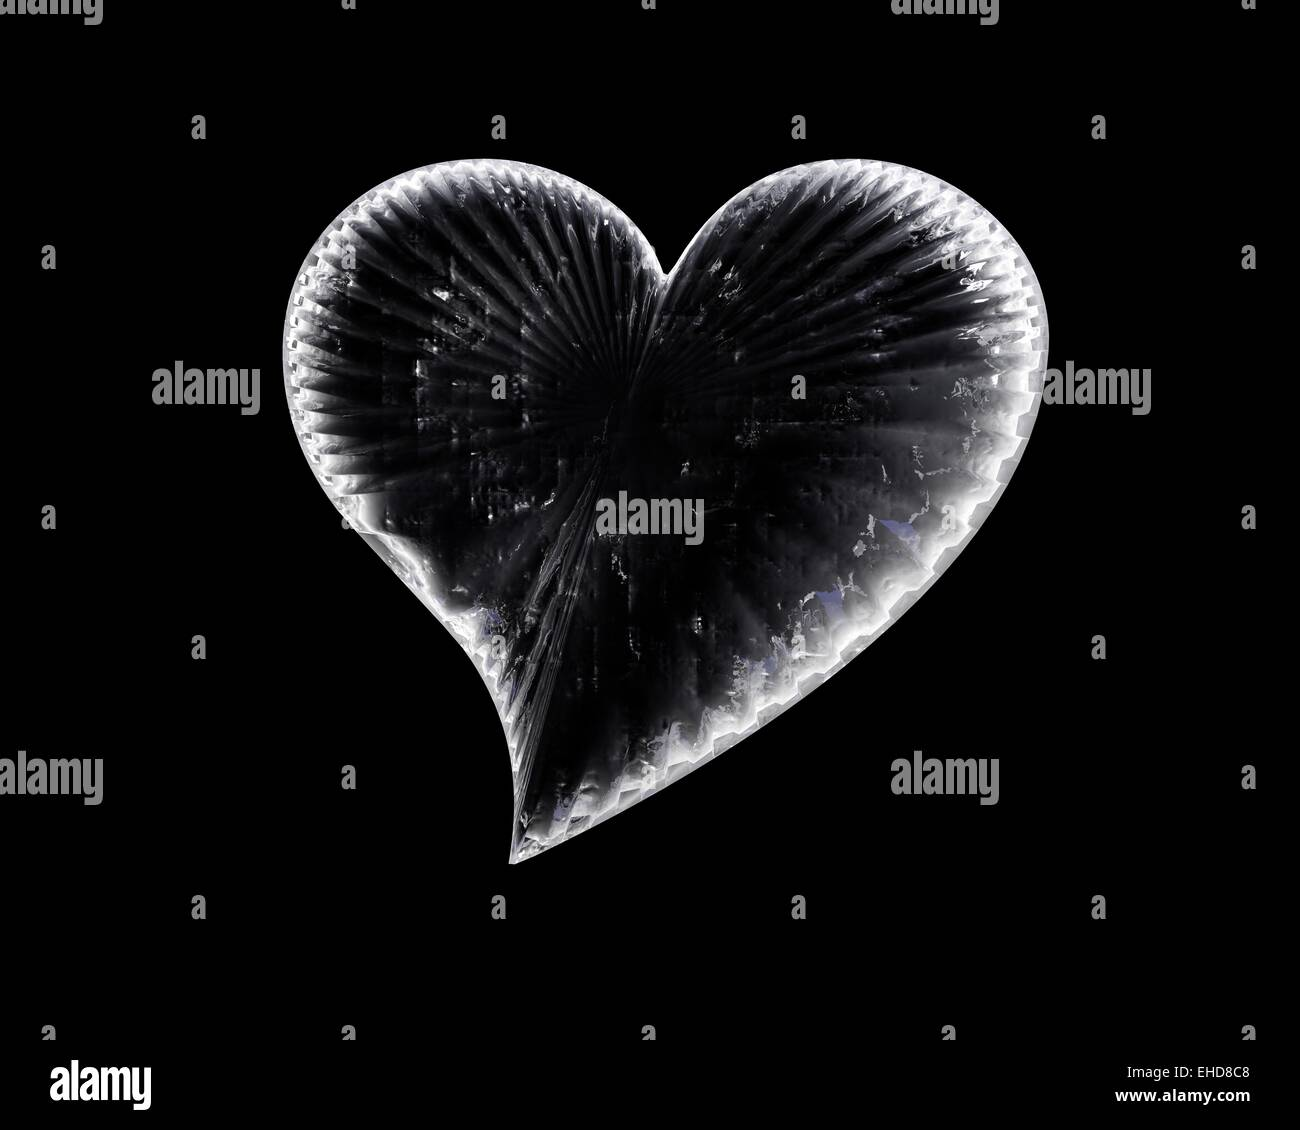 icy heart in the dark - Stock Image